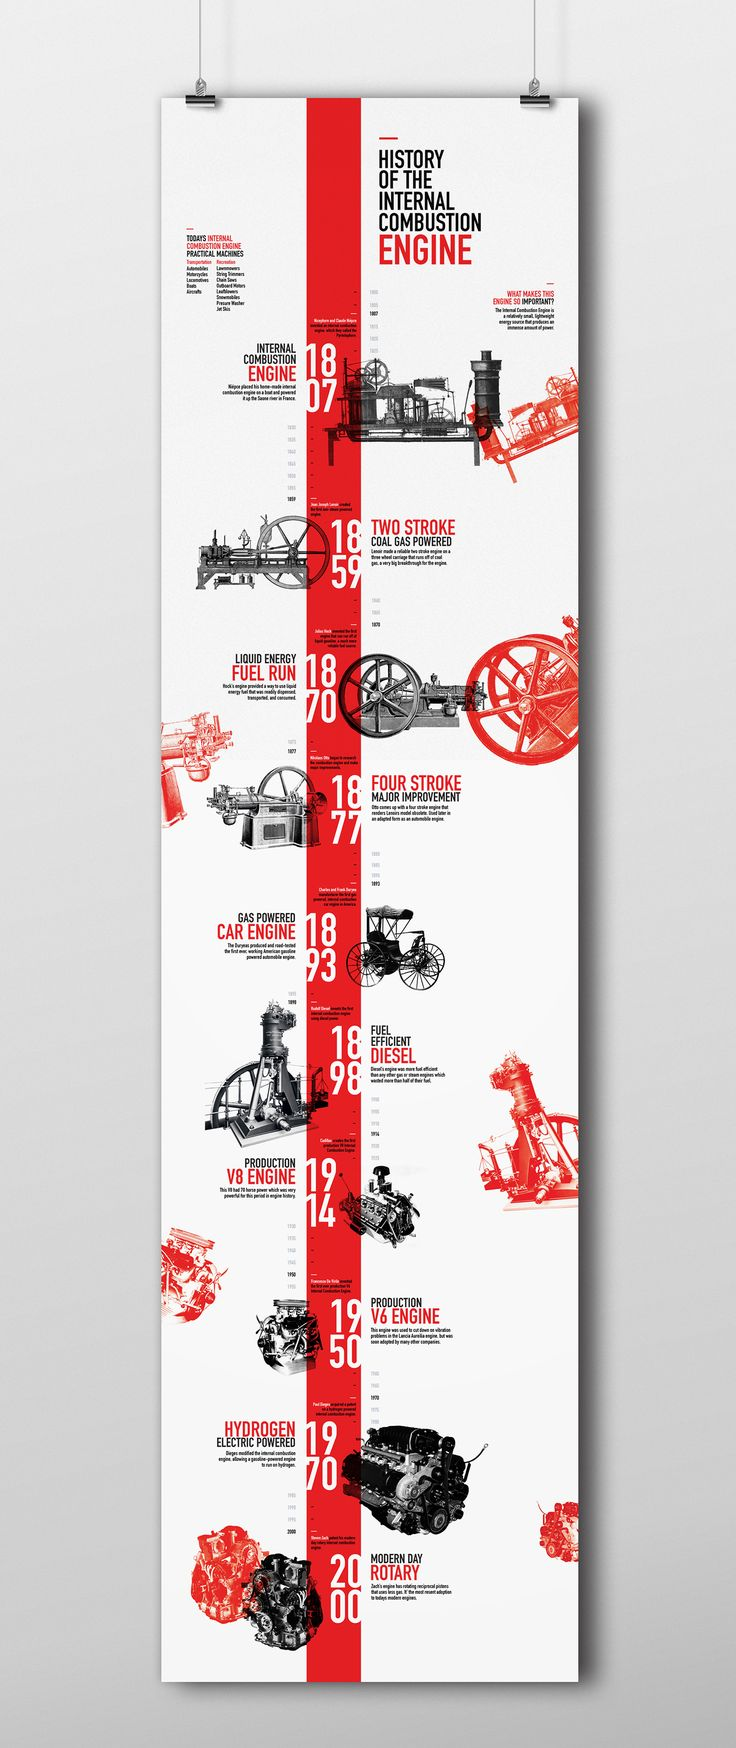 Design poster the best - Infographic Timeline Created To Inform Others About The Importance And Great History Of The Internal Combustion